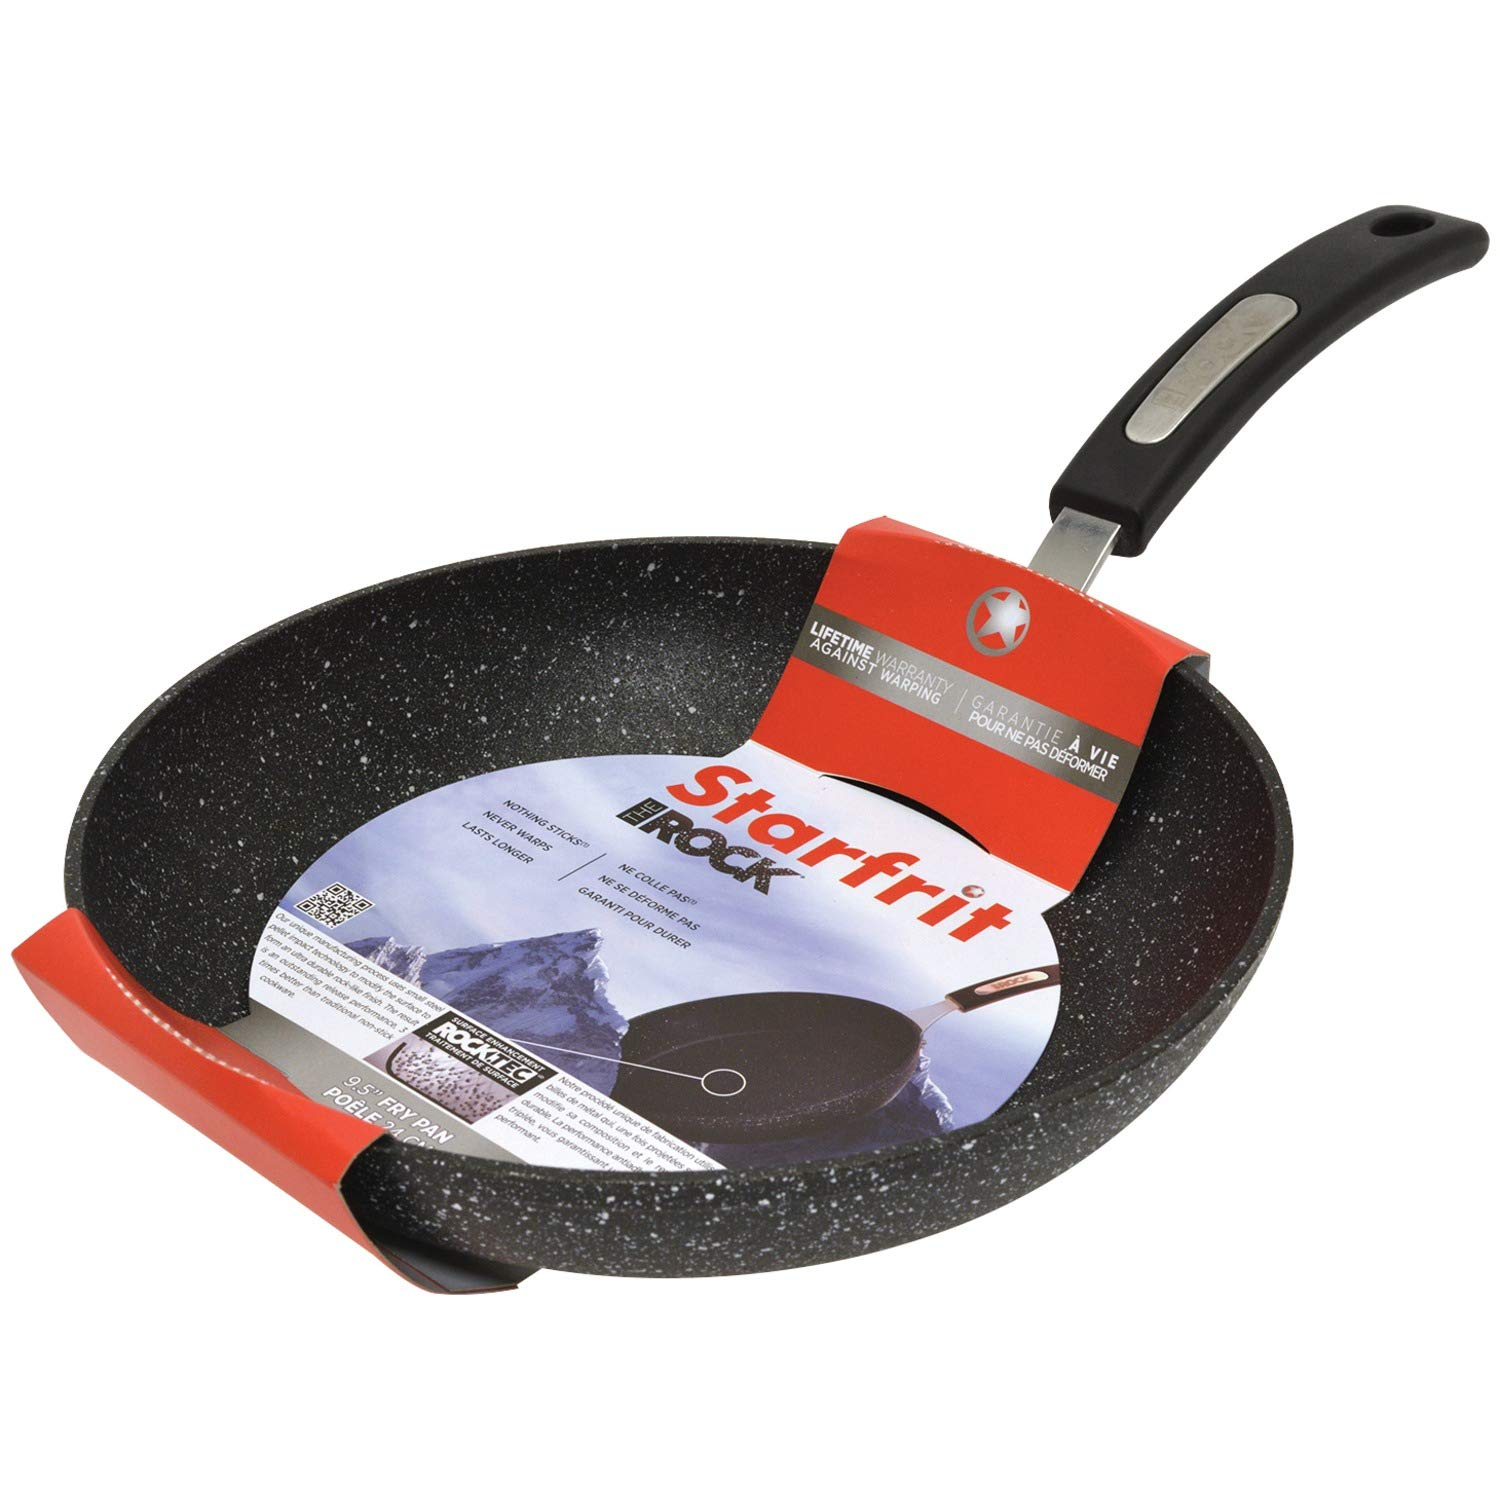 Nonstick Scratch Resistant Fry Pan with Bakelite Handle - THE ROCK by Starfrit